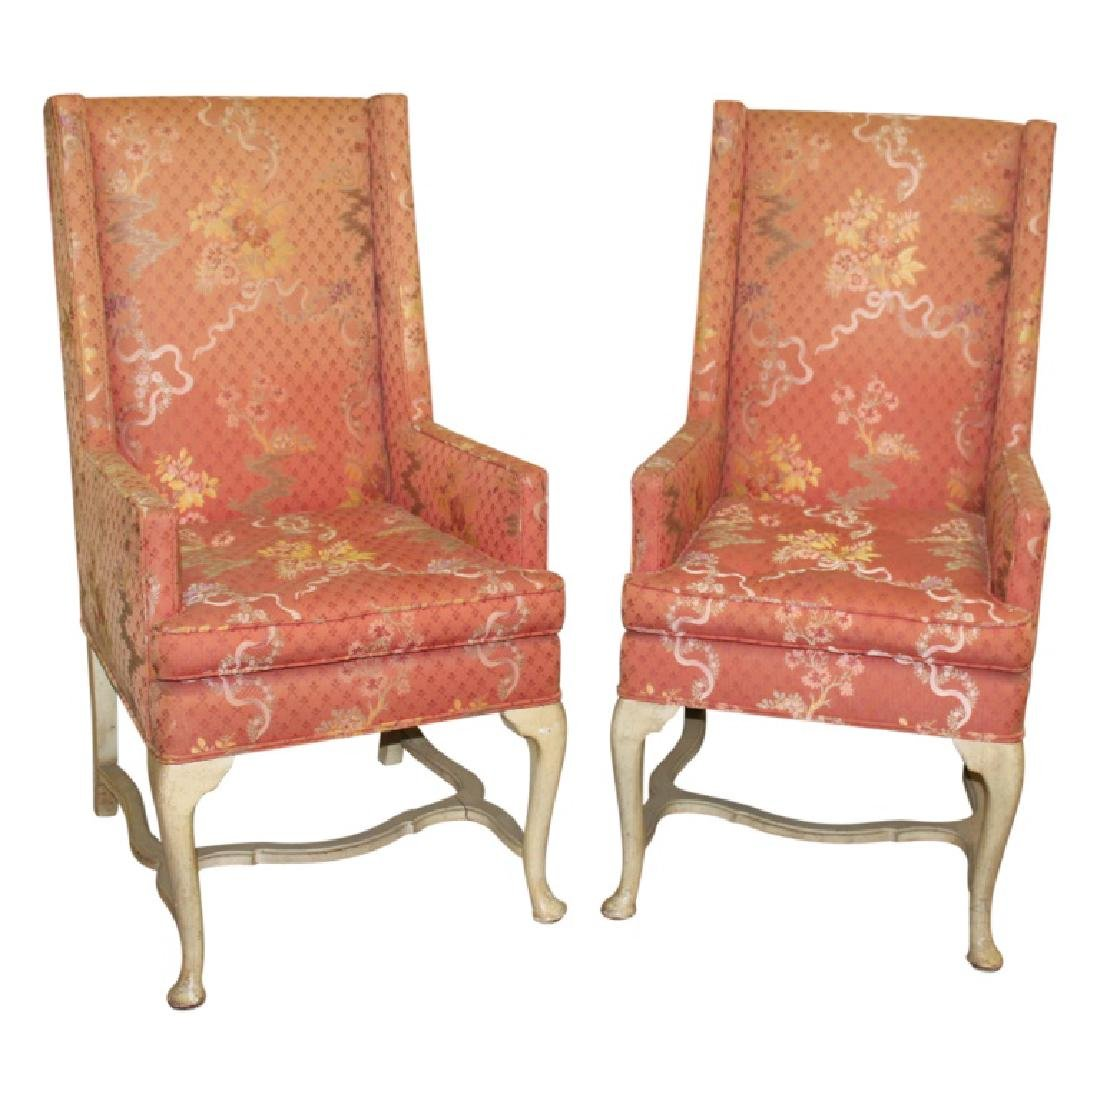 Pair of Upholstered French Fireside Chairs